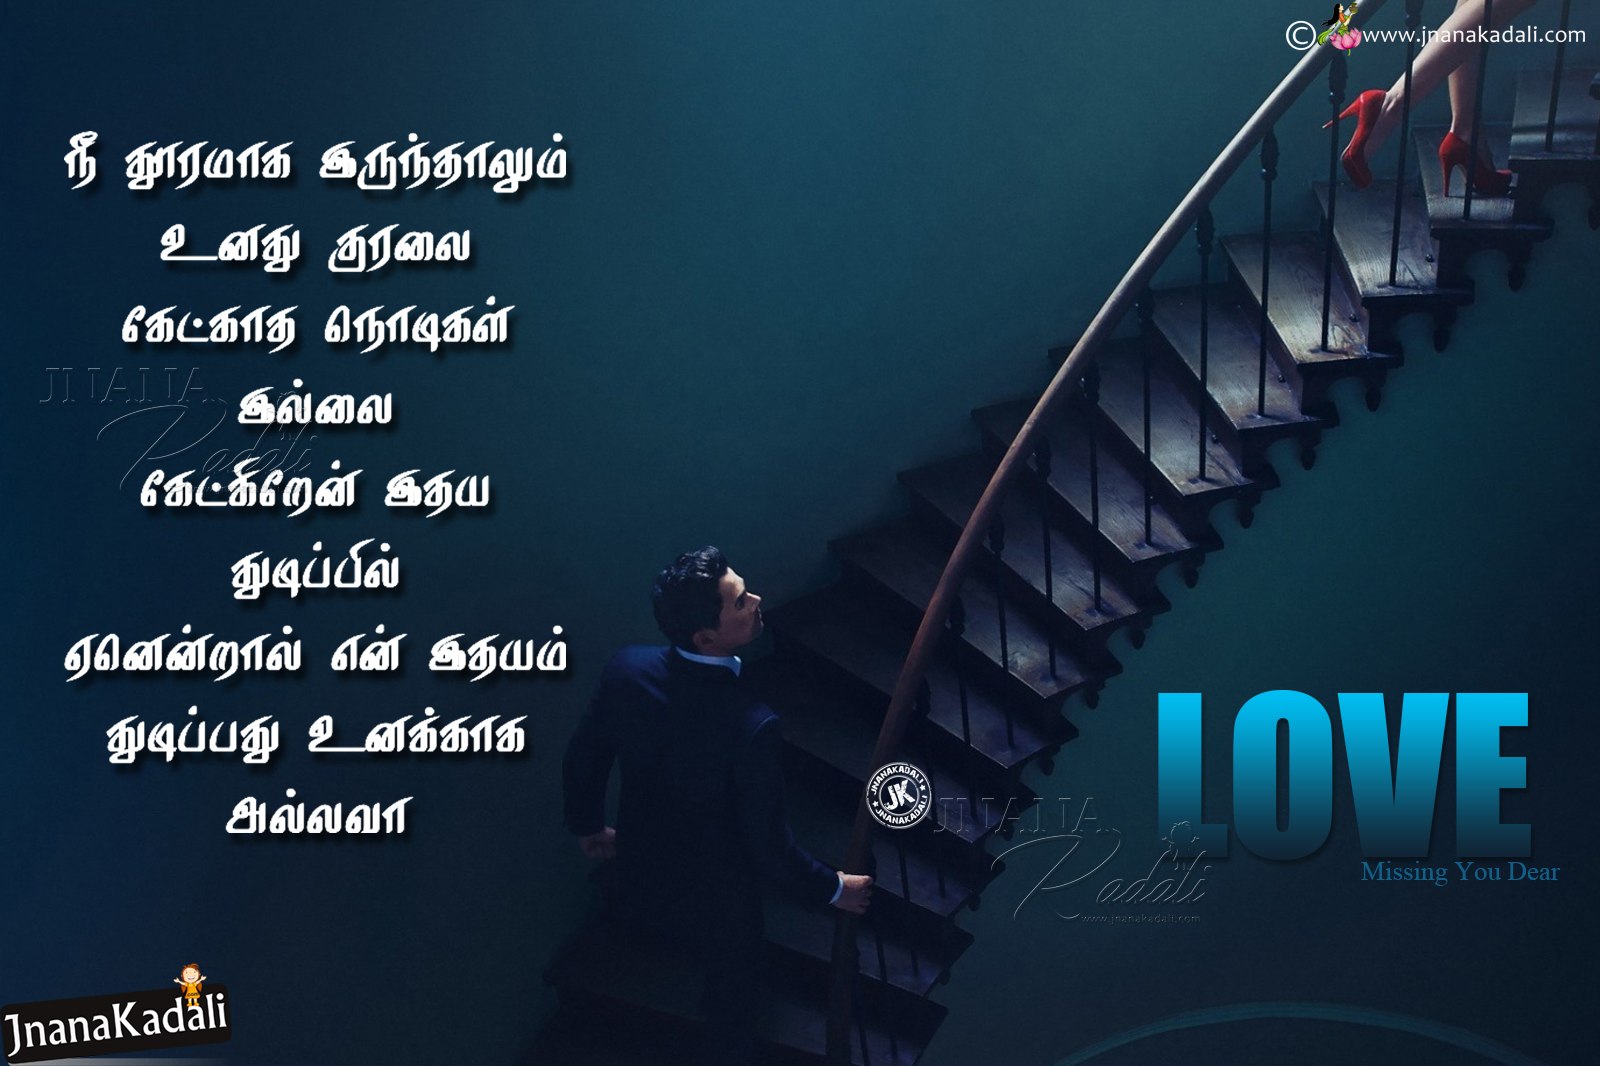 Romantic Love Quotes Messages In Tamil Wife And Husband Romantic Love Thought In Tamil Brainysms Husband wife tamil quotes quotes gallery. romantic love quotes messages in tamil